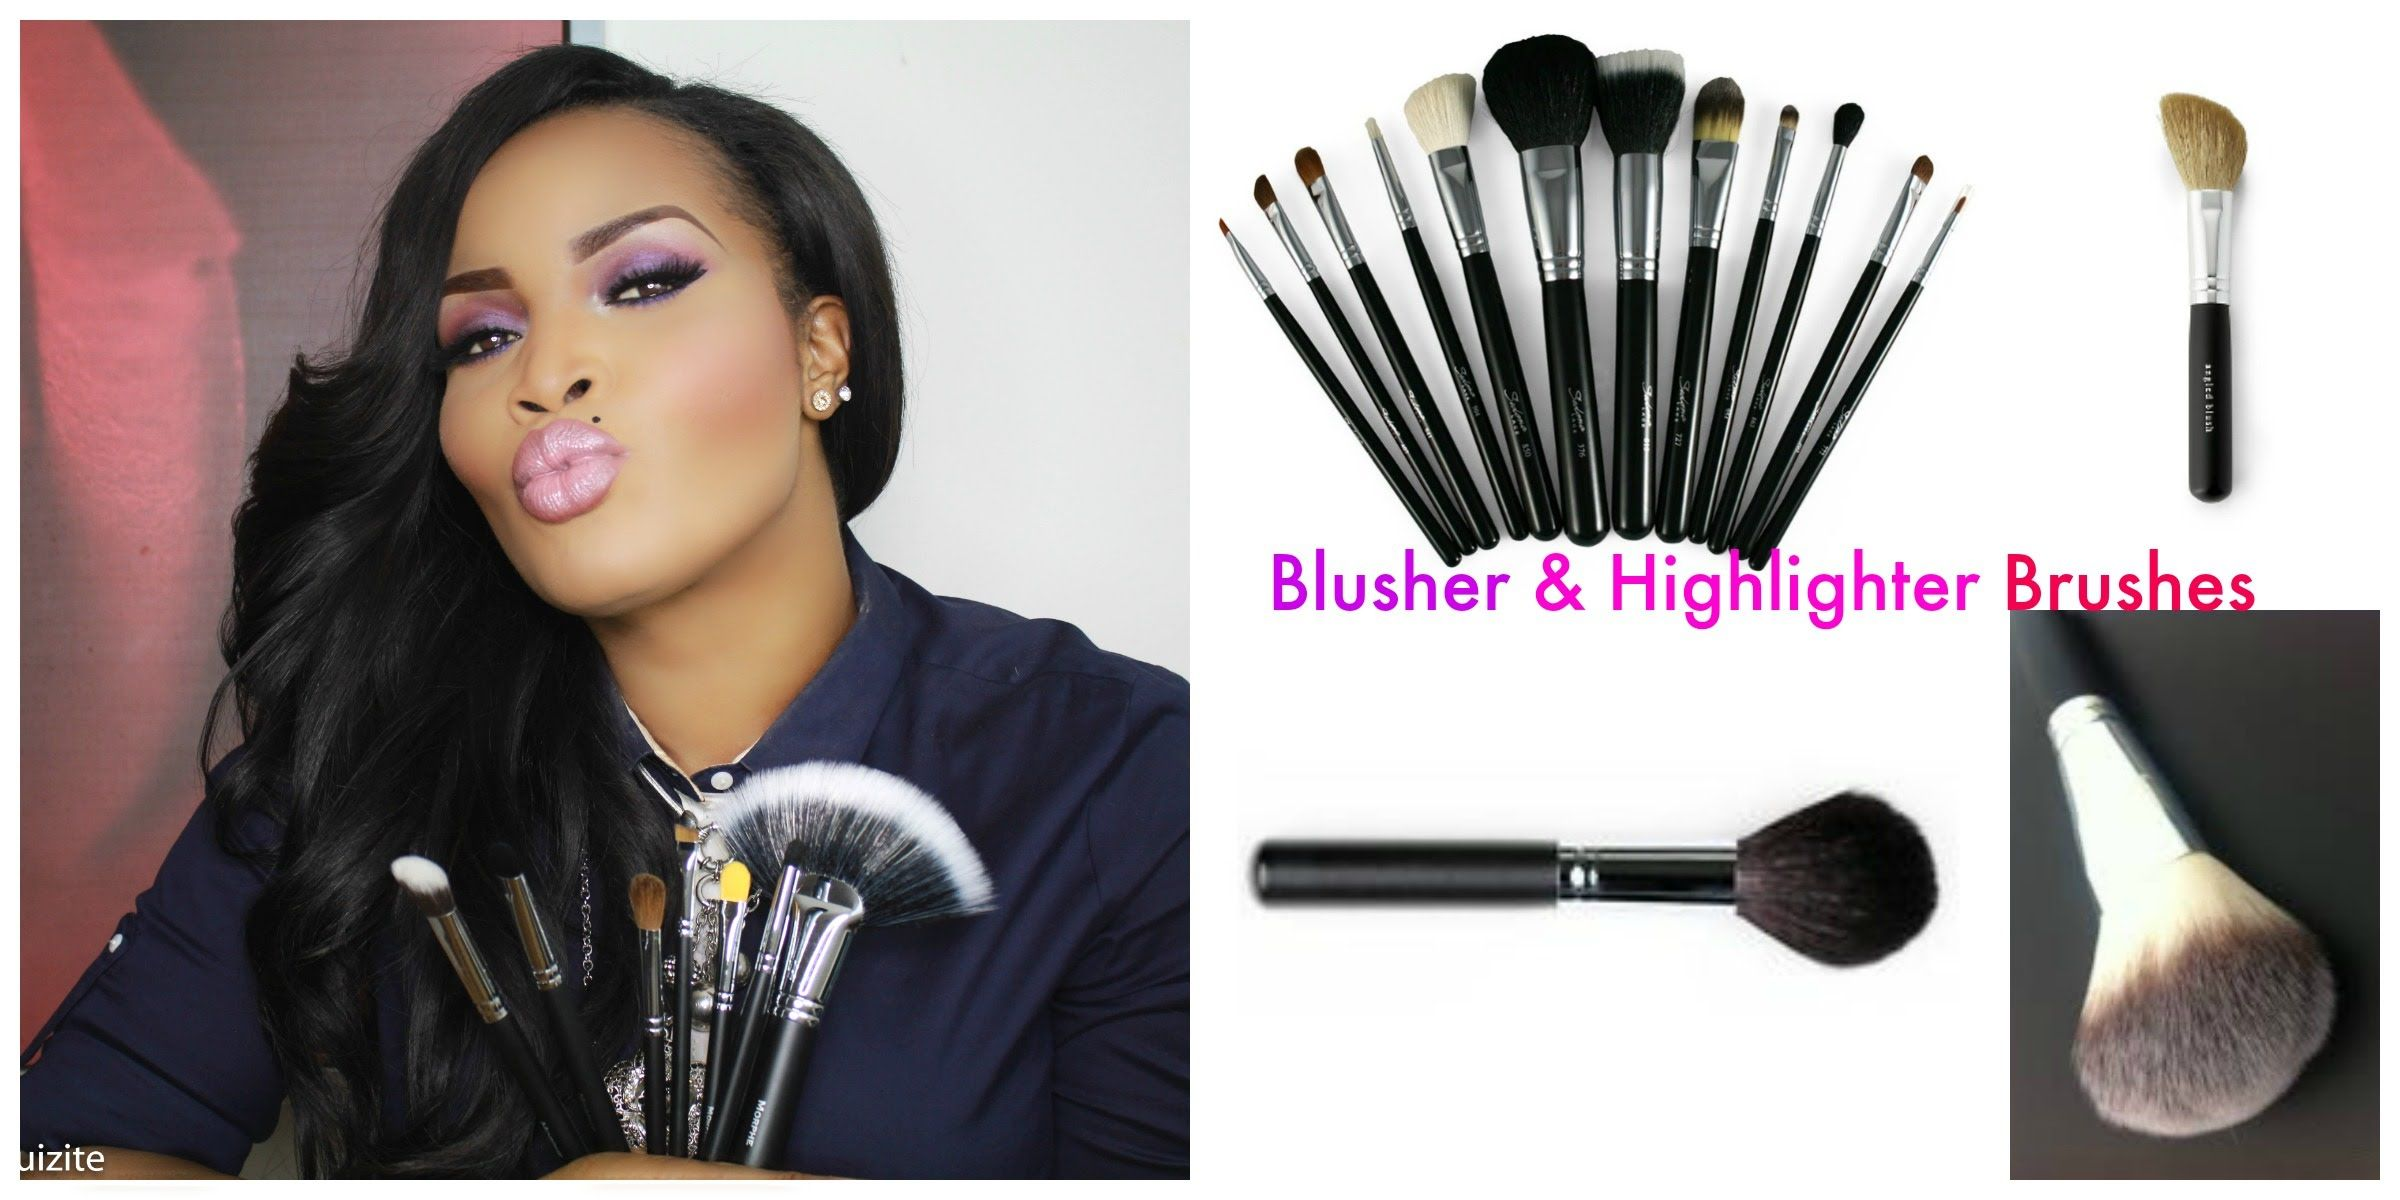 Makeup Brushes Guide Part 2 Blusher & Highlight Brushes